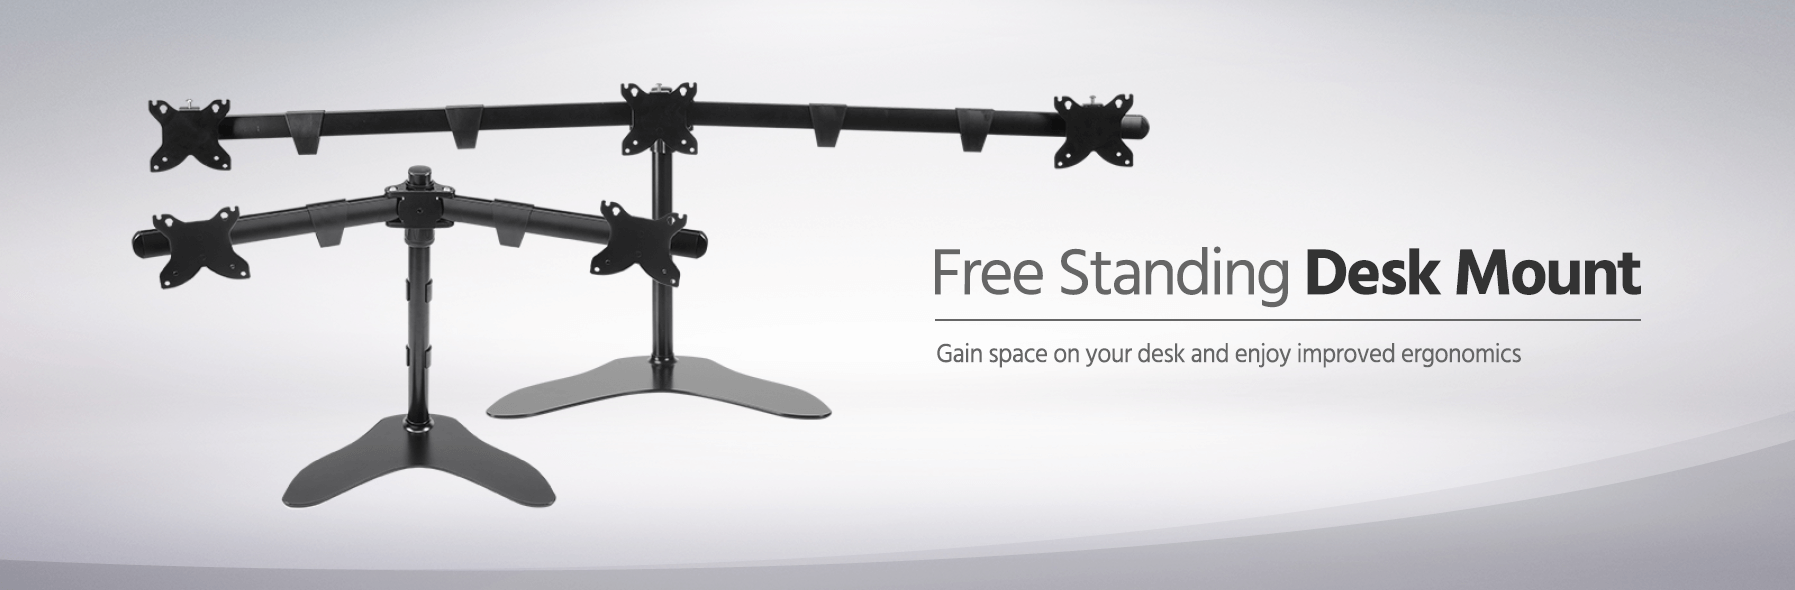 Monoprice Triple Monitor Free Standing Desk Mount 15 30 In